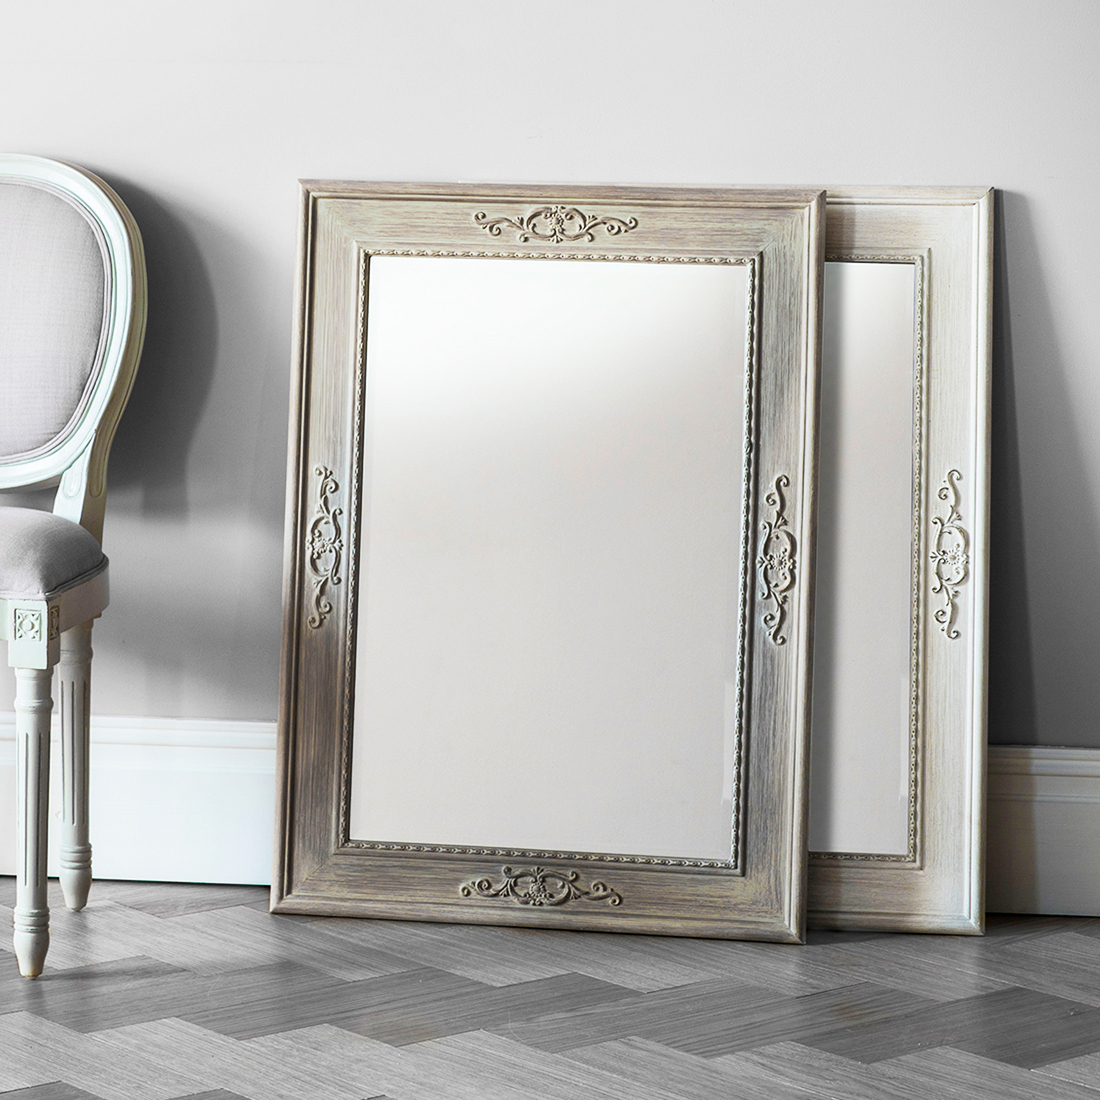 Distressed White Wall Mirrors With Regard To Well Liked Decorative Rectangular Wooden Wall Mirrors – White Or Limed Oak (View 6 of 20)